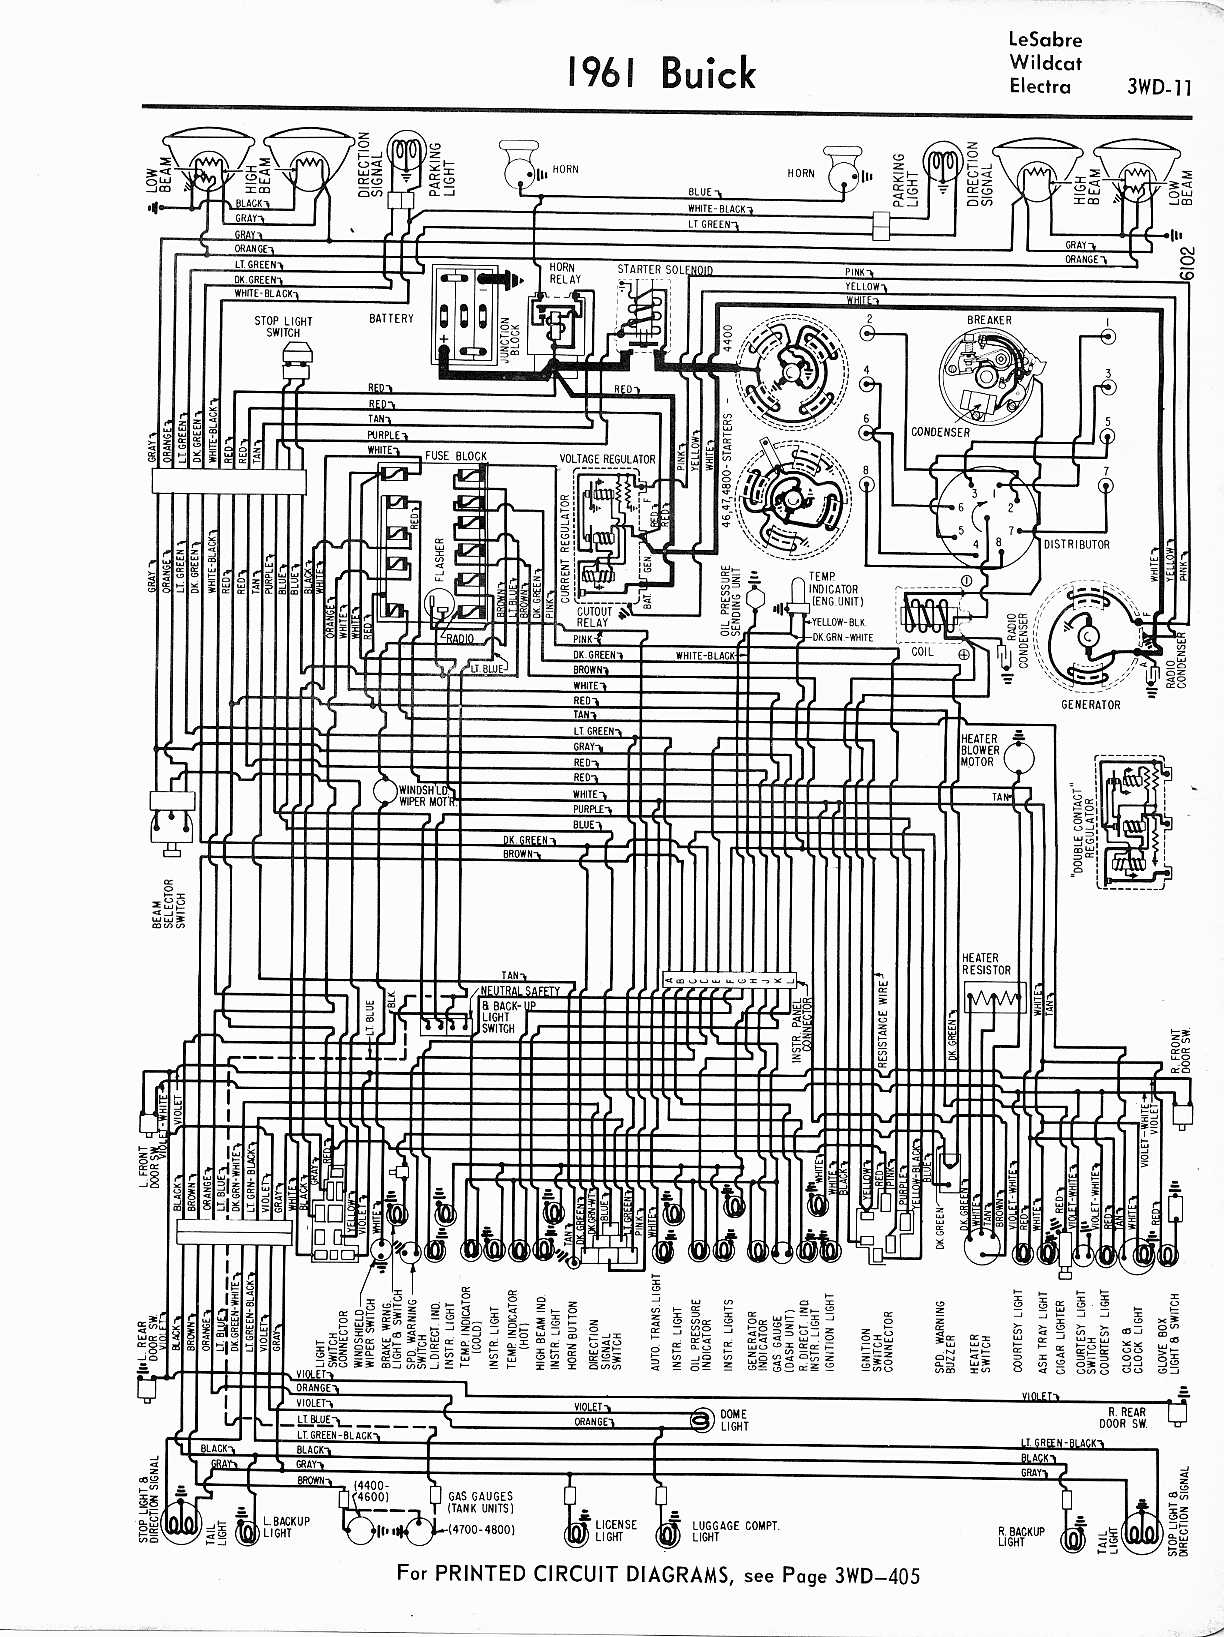 1965 Chevy Headlight Switch Wiring Diagram Buick Wiring Diagrams 1957 1965